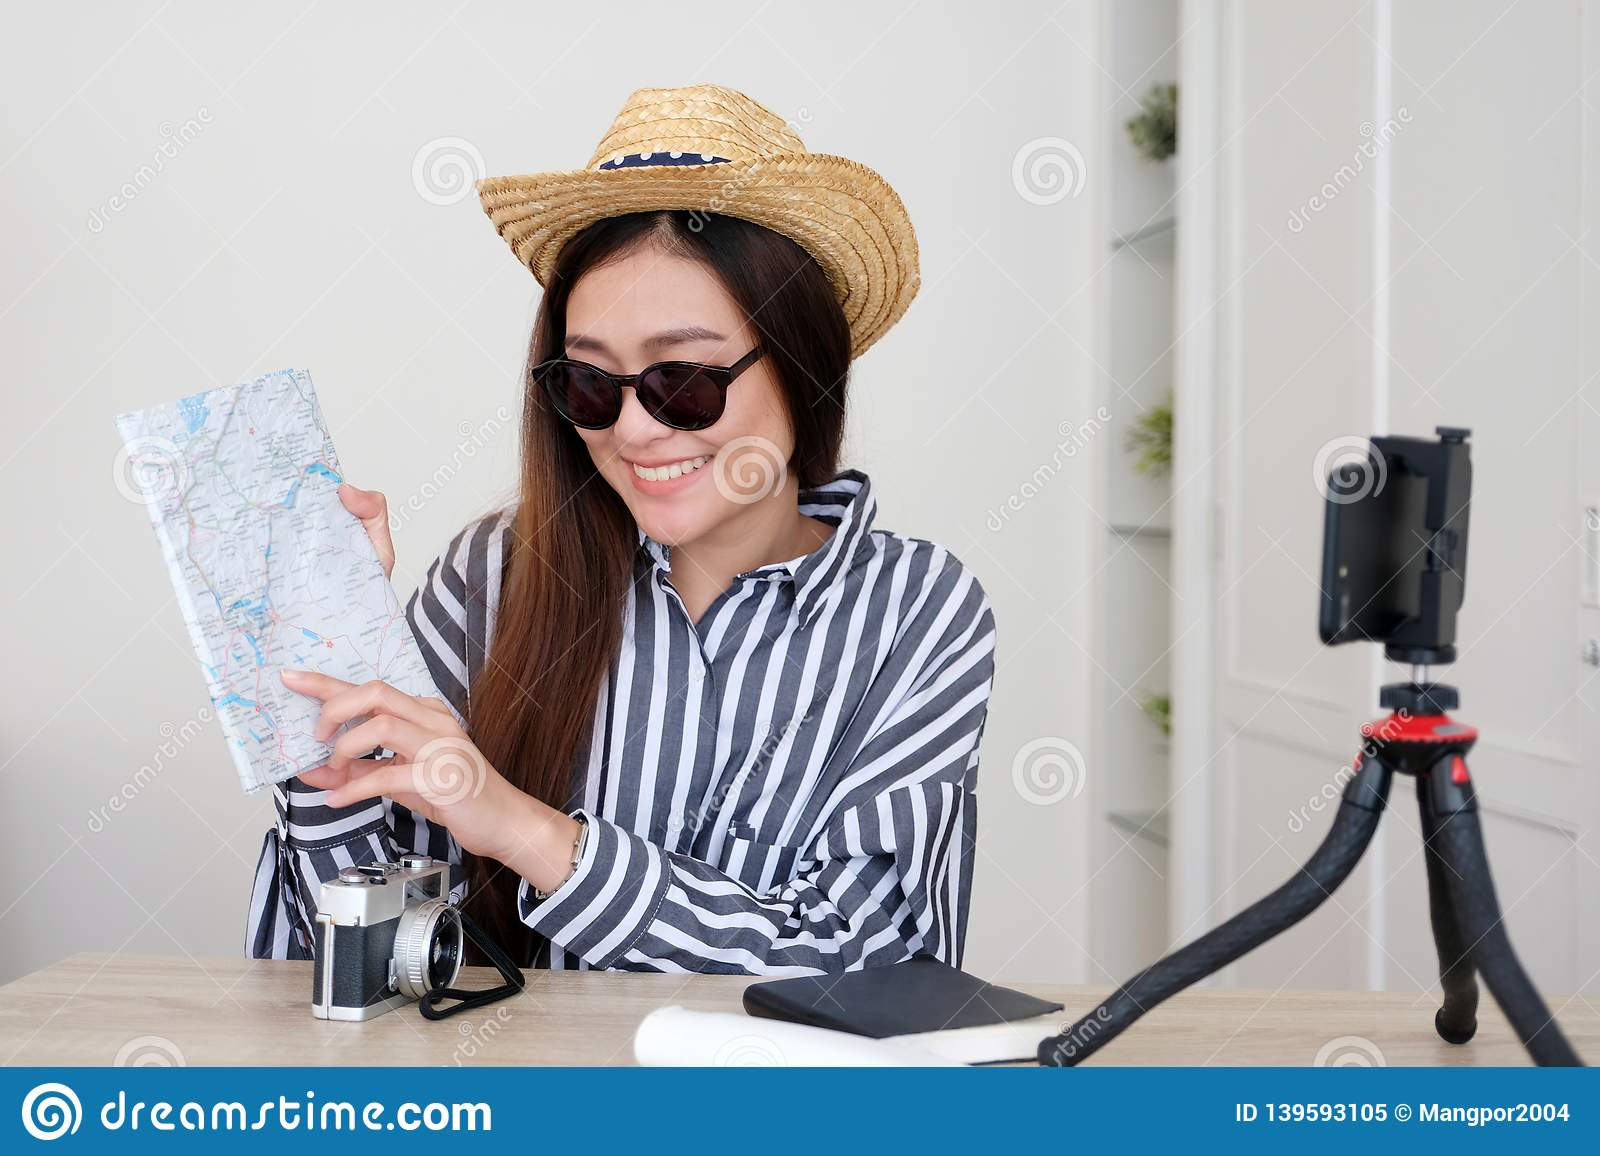 Travel Blog With Map Portrait Of Young Asian Woman Travel Blogger Holding Map